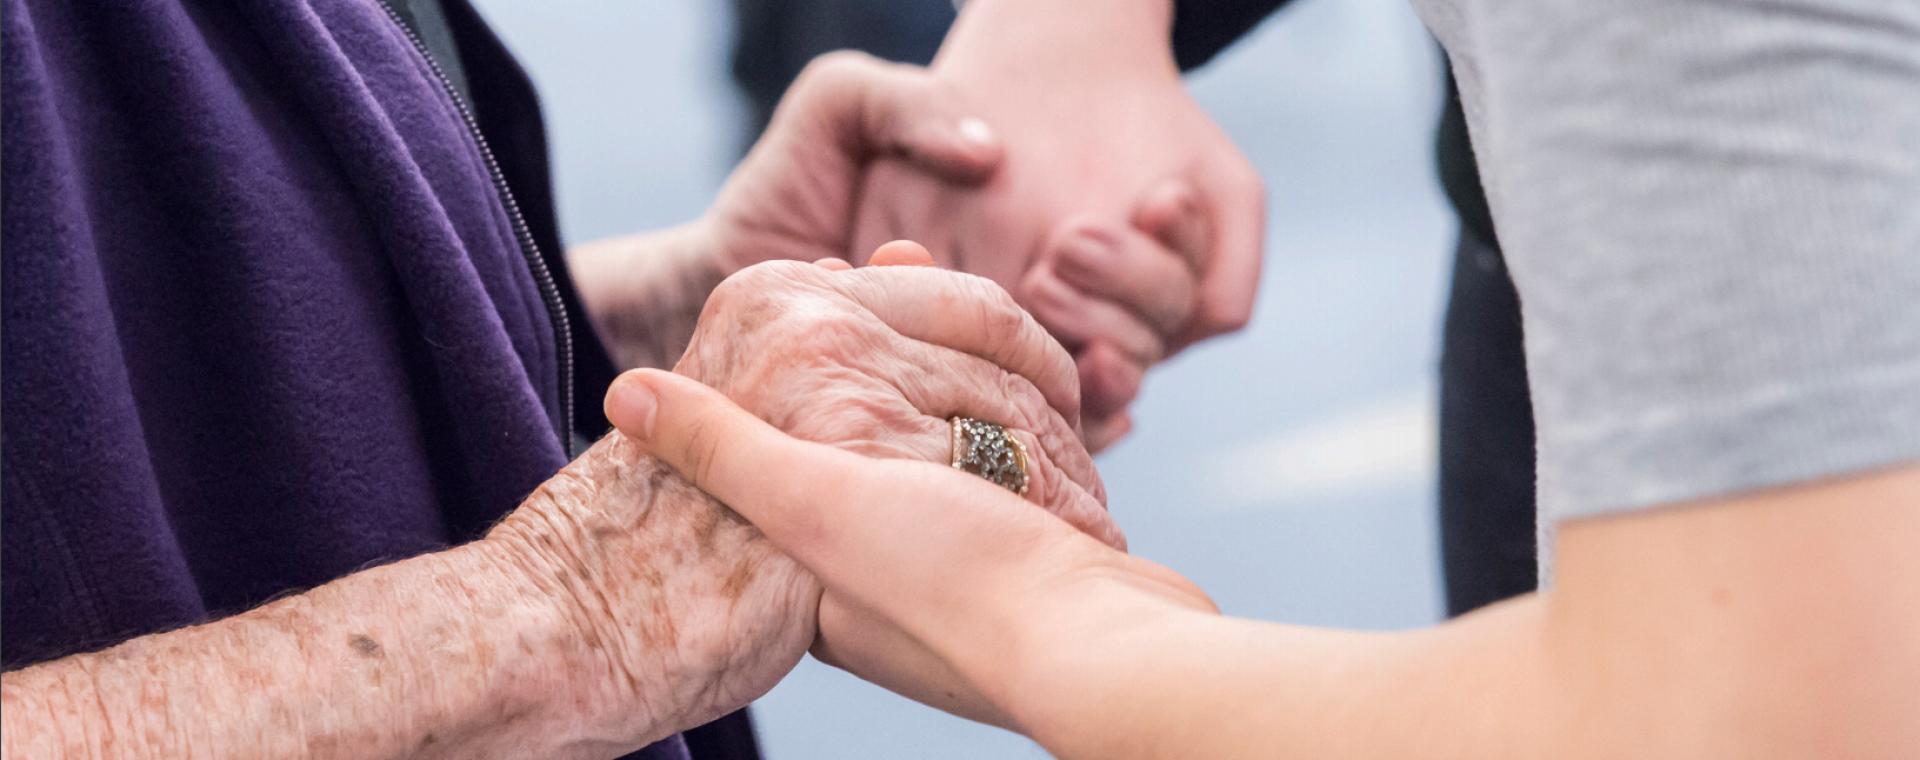 Ethical Wills: a Values Vault for Future Generations©